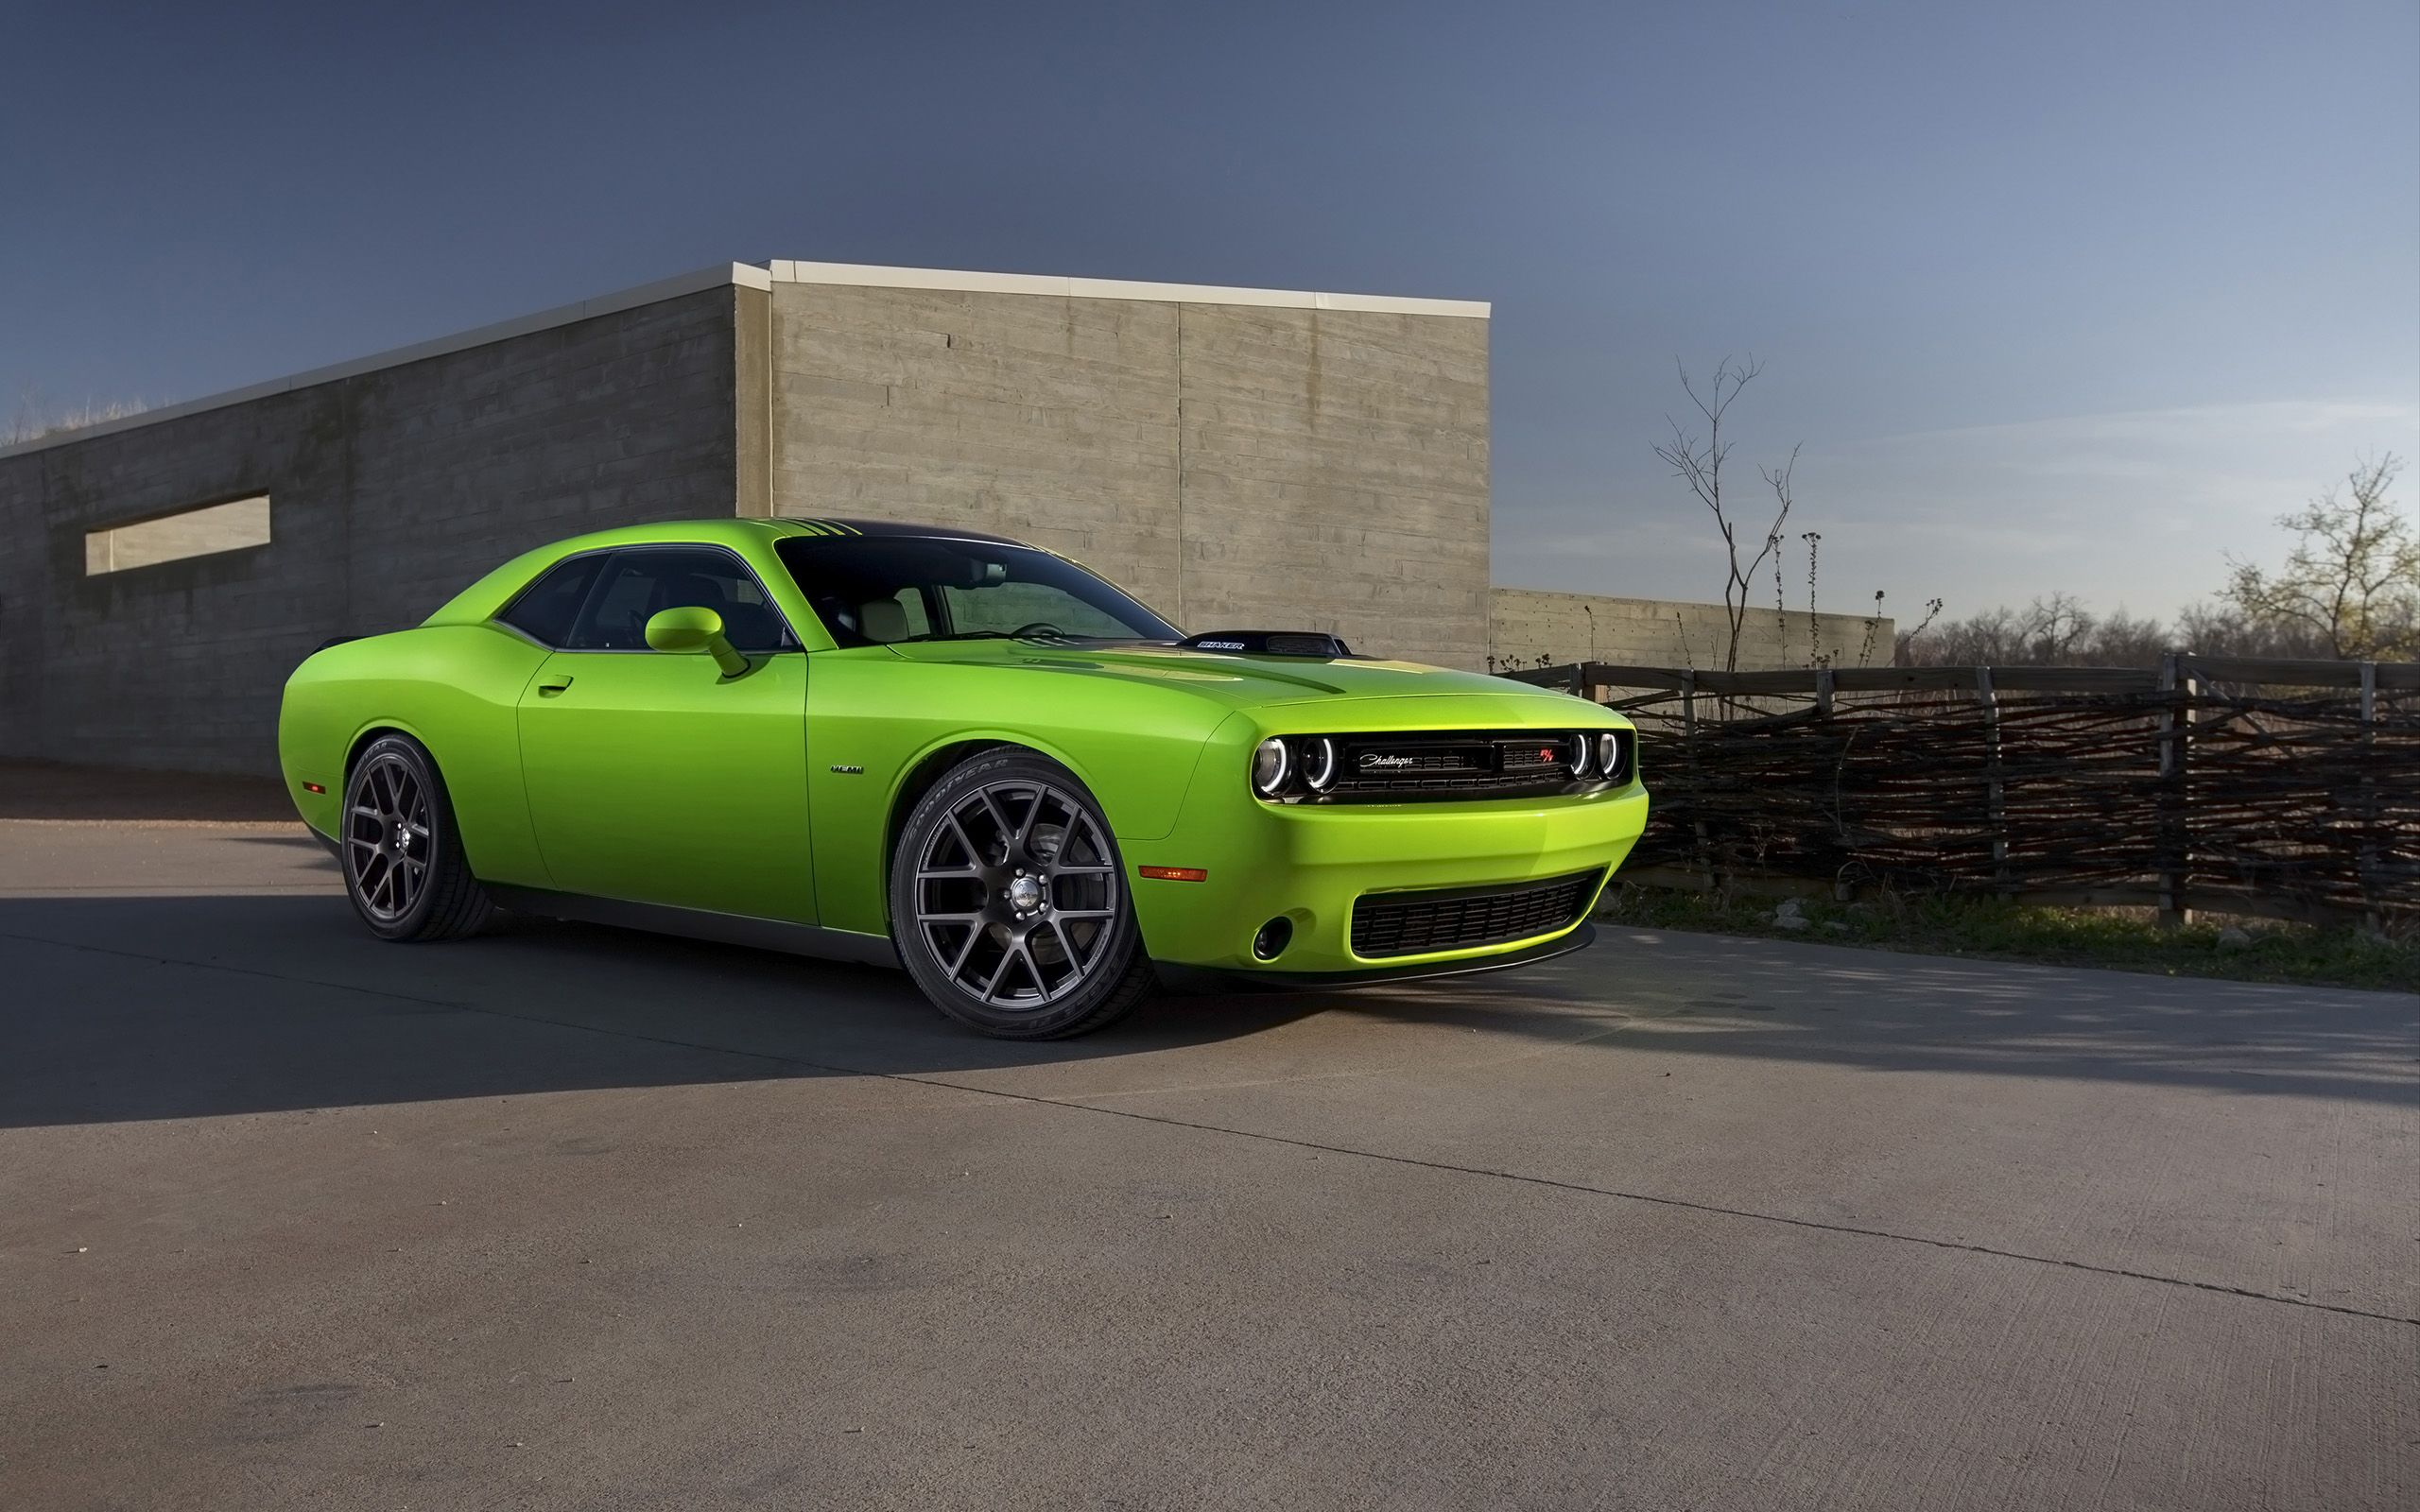 2015 dodge challenger green is a hd wallpaper posted in dodge category you can download